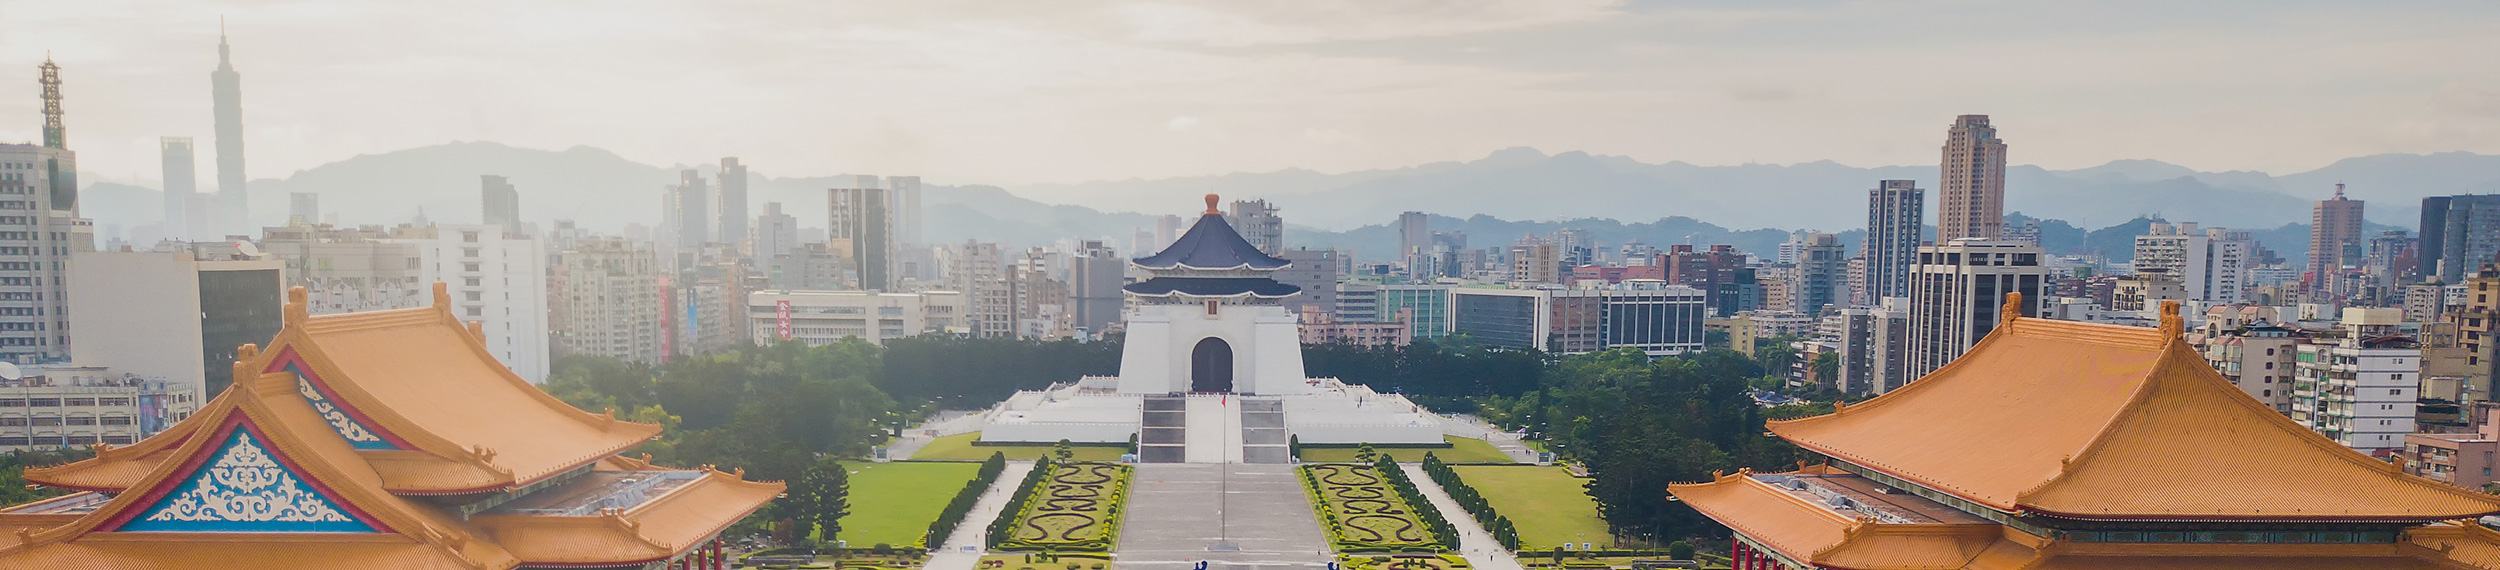 aerial sunrise view from drone of Chiang Kai-Shek Memorial Hall with taipei city